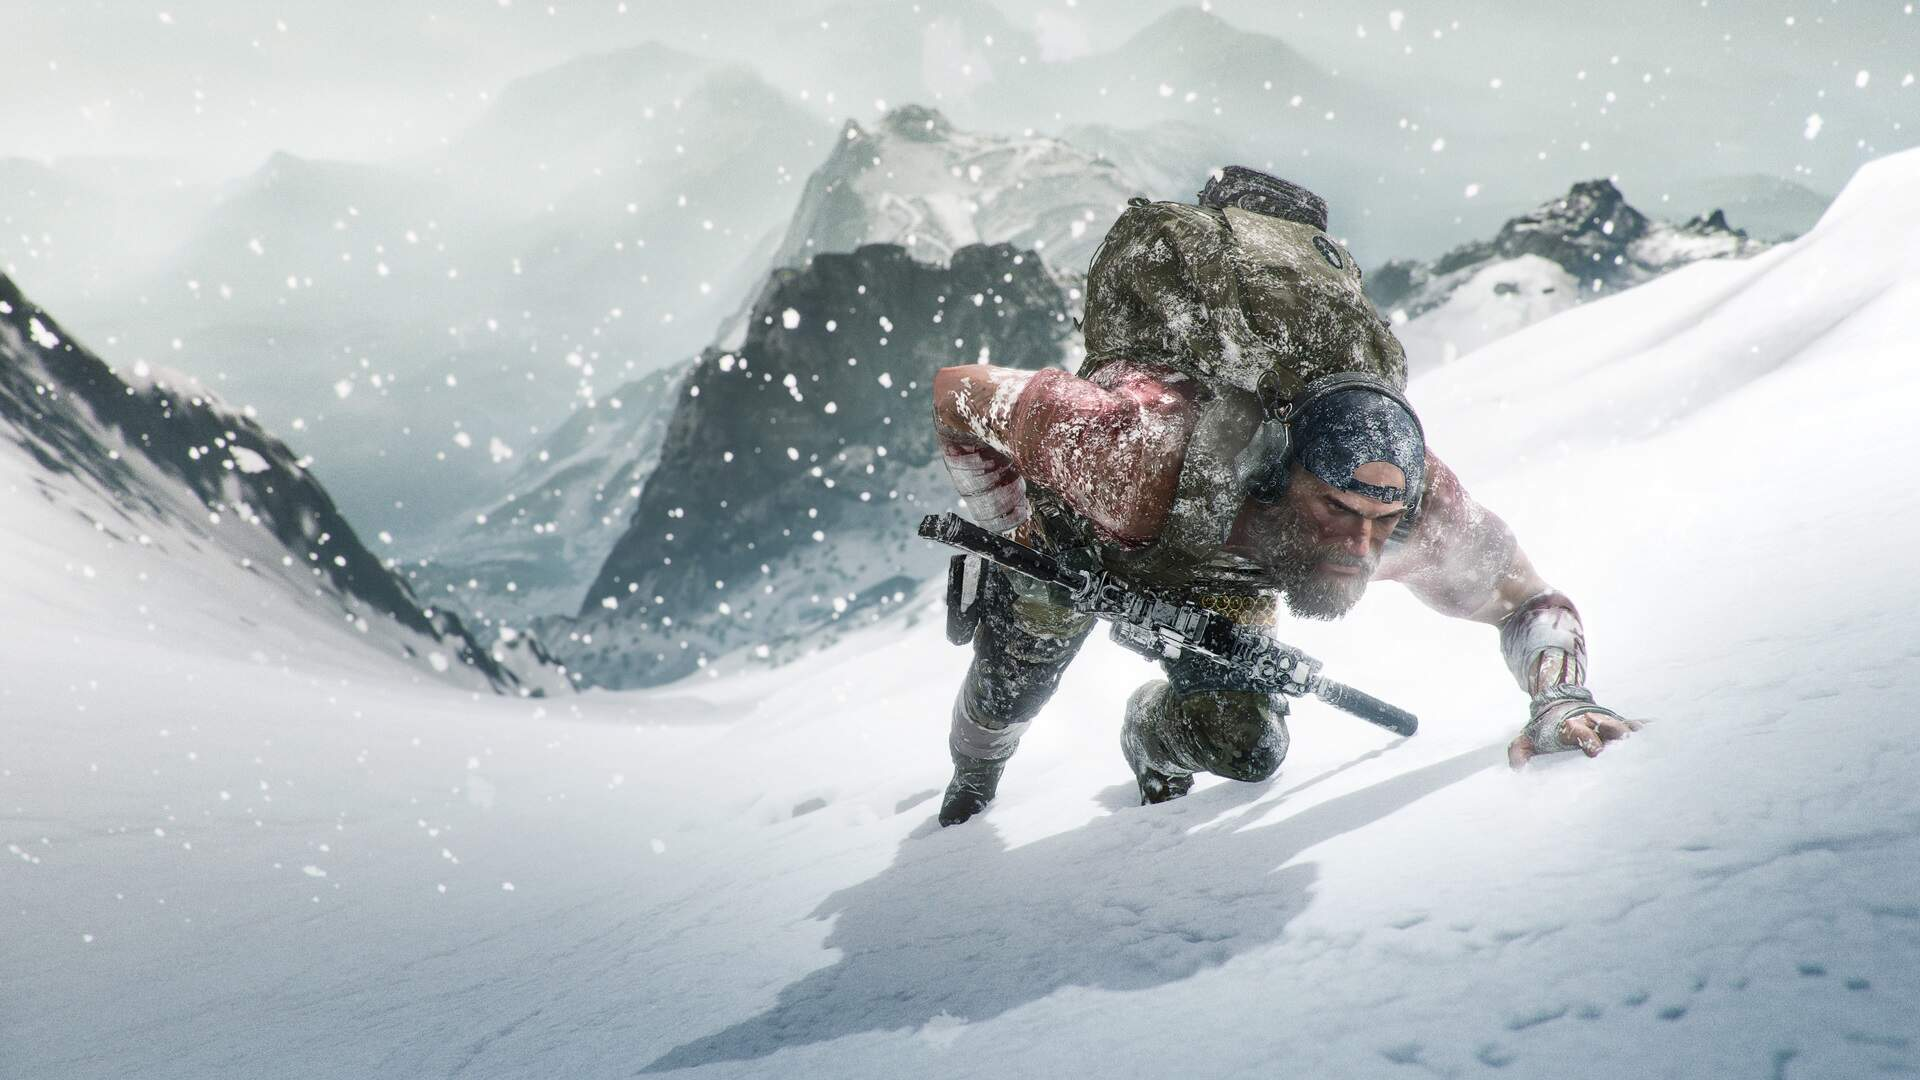 Ghost Recon: Breakpoint Beta Shows Off Improved Animations, But Players Are Still Disgruntled